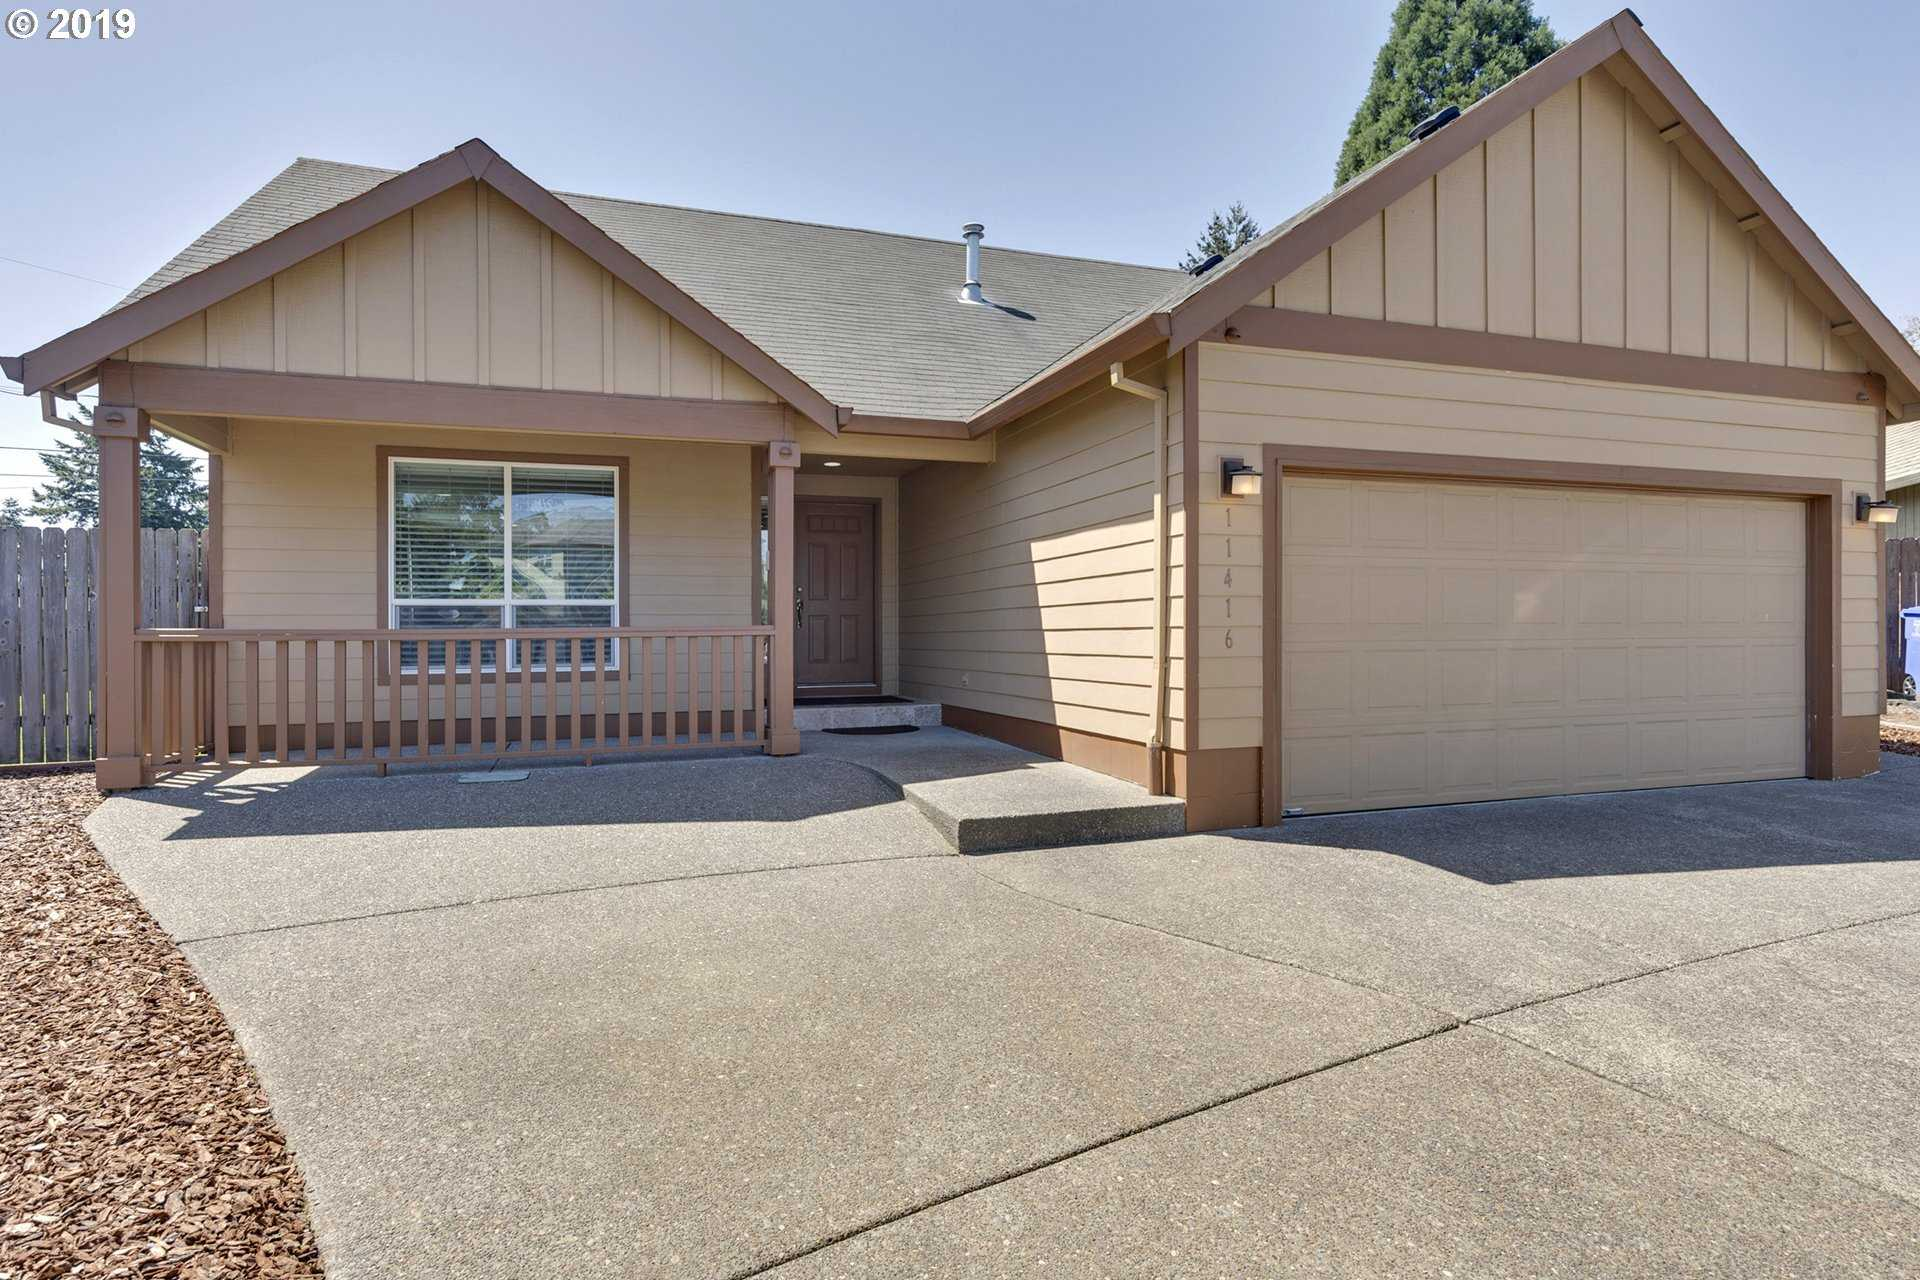 $338,000 - 3Br/2Ba -  for Sale in Portland